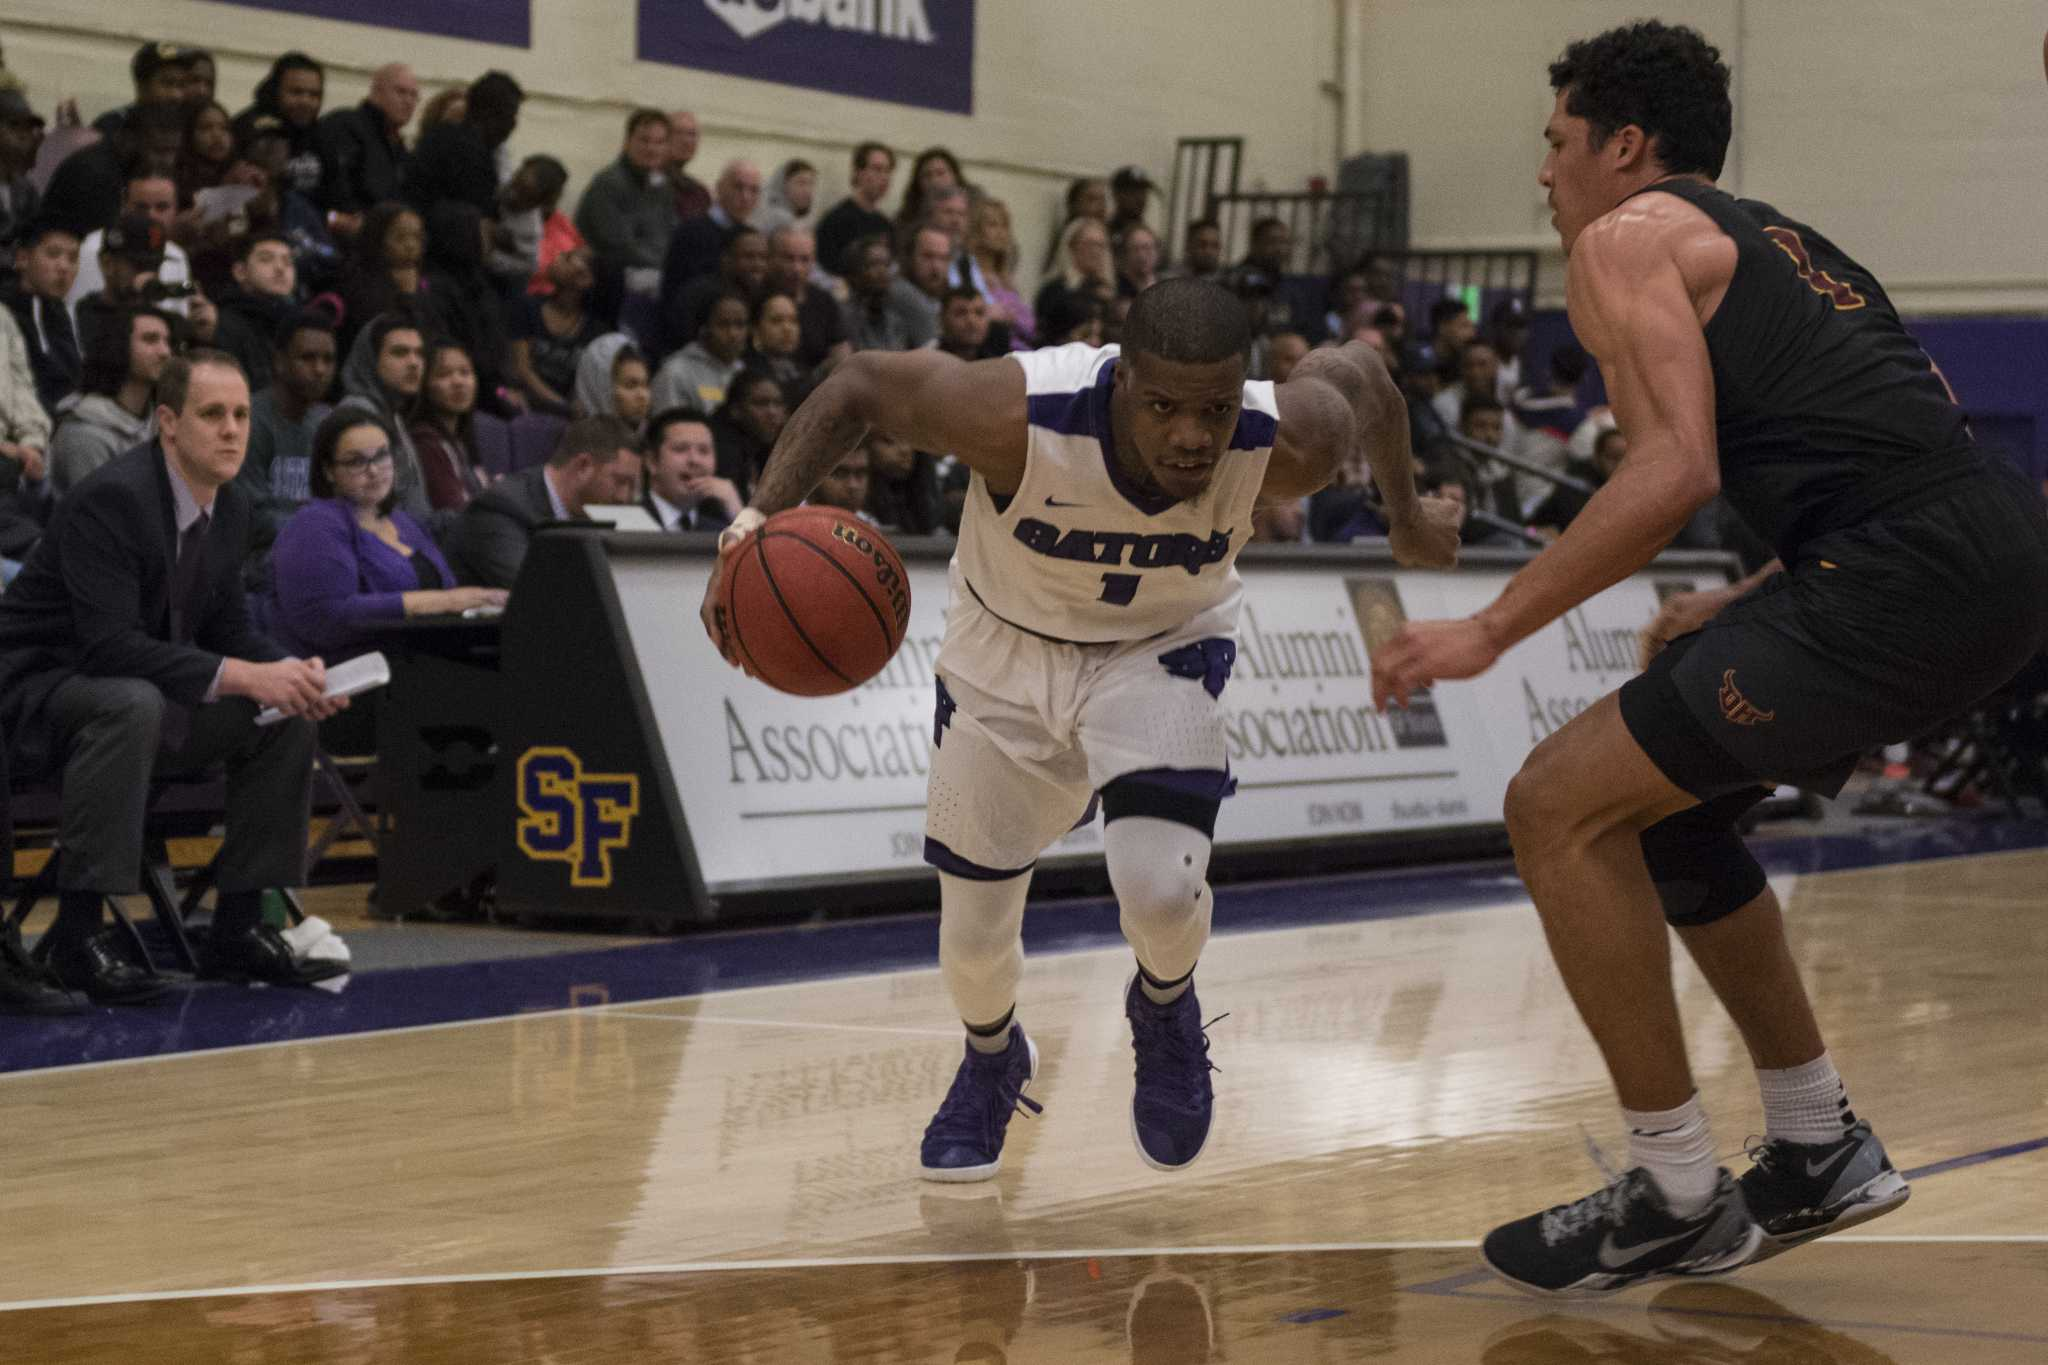 SF State Gators' junior guard Warren Jackson  drives in while guarded by CAL State Dominguez Hills Toros' junior guard Khalil Bedart-Ghani during the Gators' 78-68 win over the Toros at Swamp in San Francisco on Friday, Feb. 17, 2017. (Lee Kin/ Xpress)